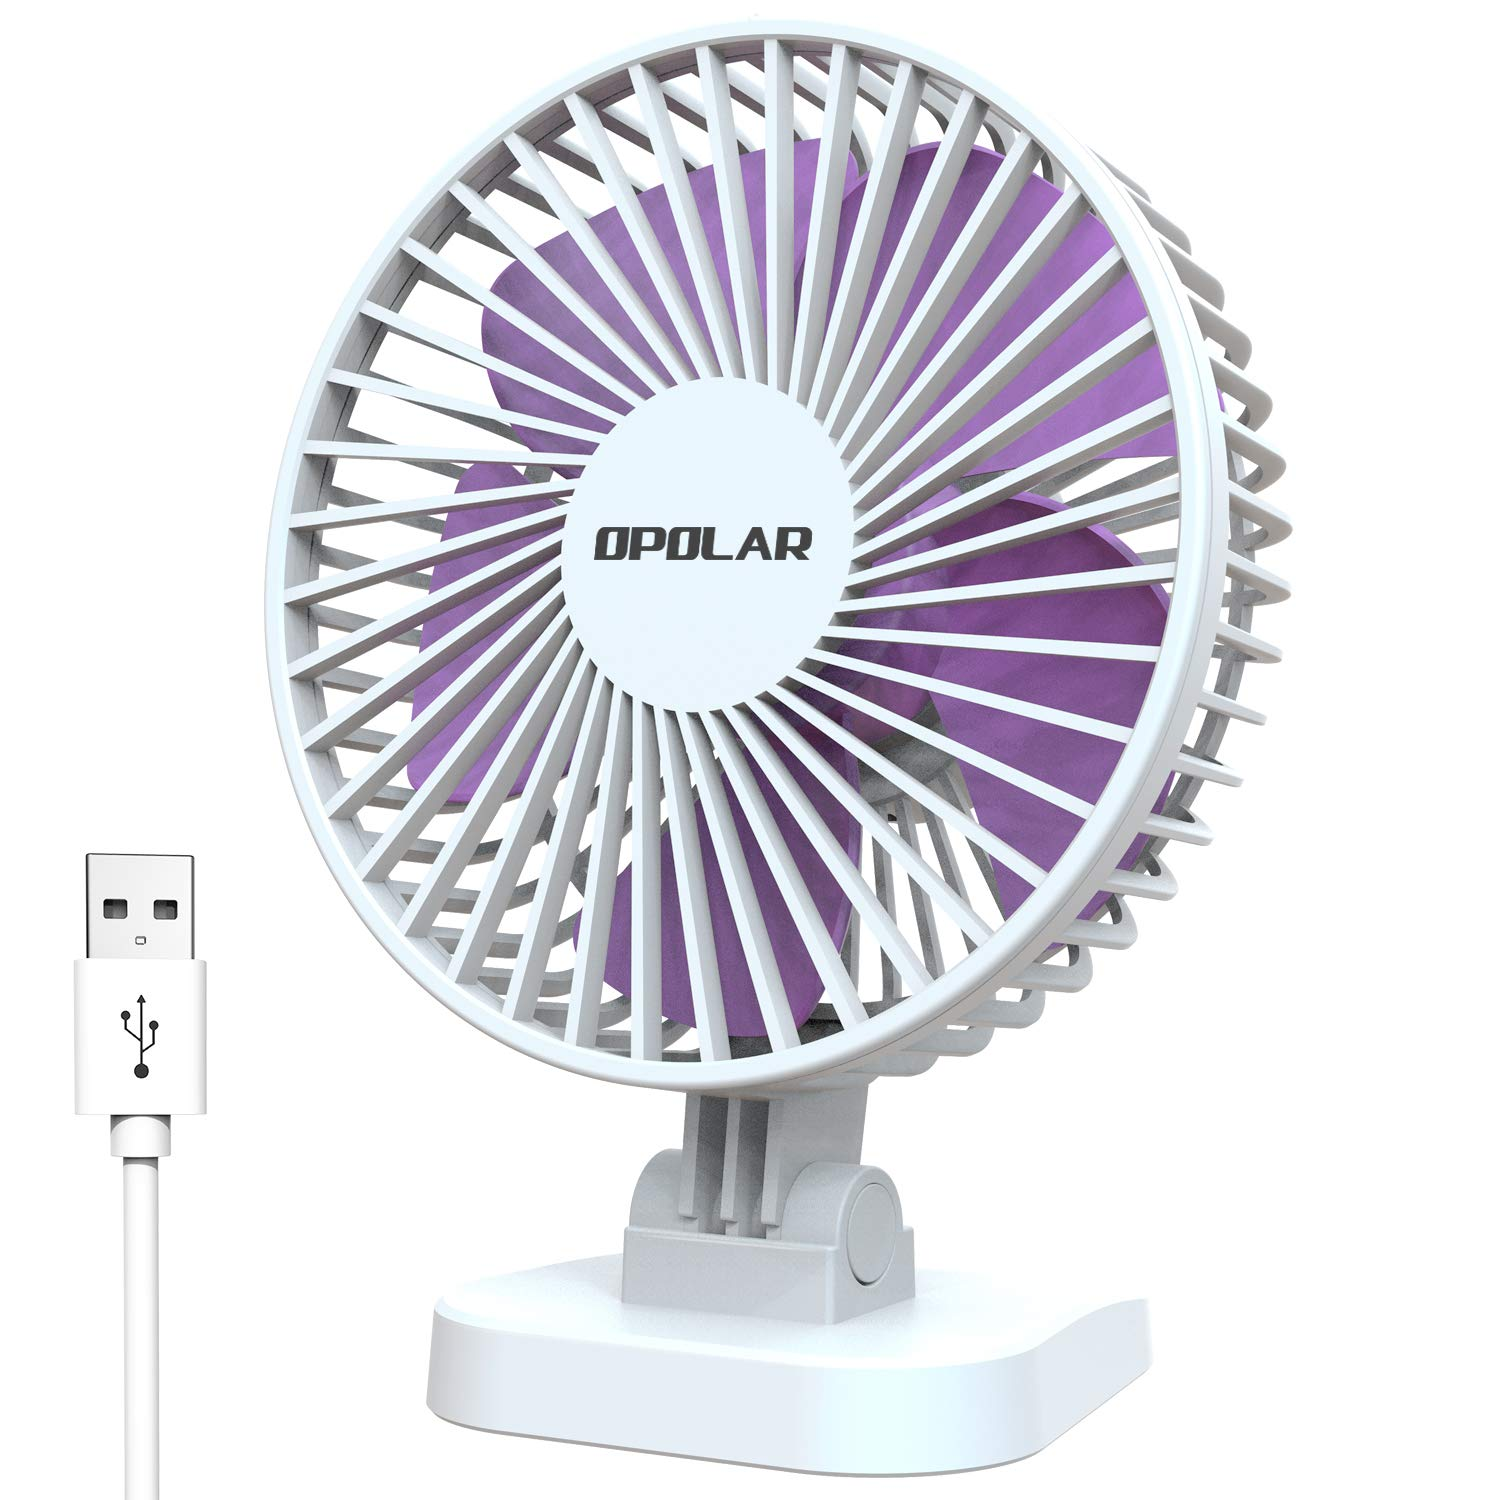 OPOLAR Small Desk Fan for Office Table, Cute but Mighty, 3 Speeds, USB Powered, 40 Adjustment, 2019 New Quiet Portable Personal Fan 4.9ft USB Plug